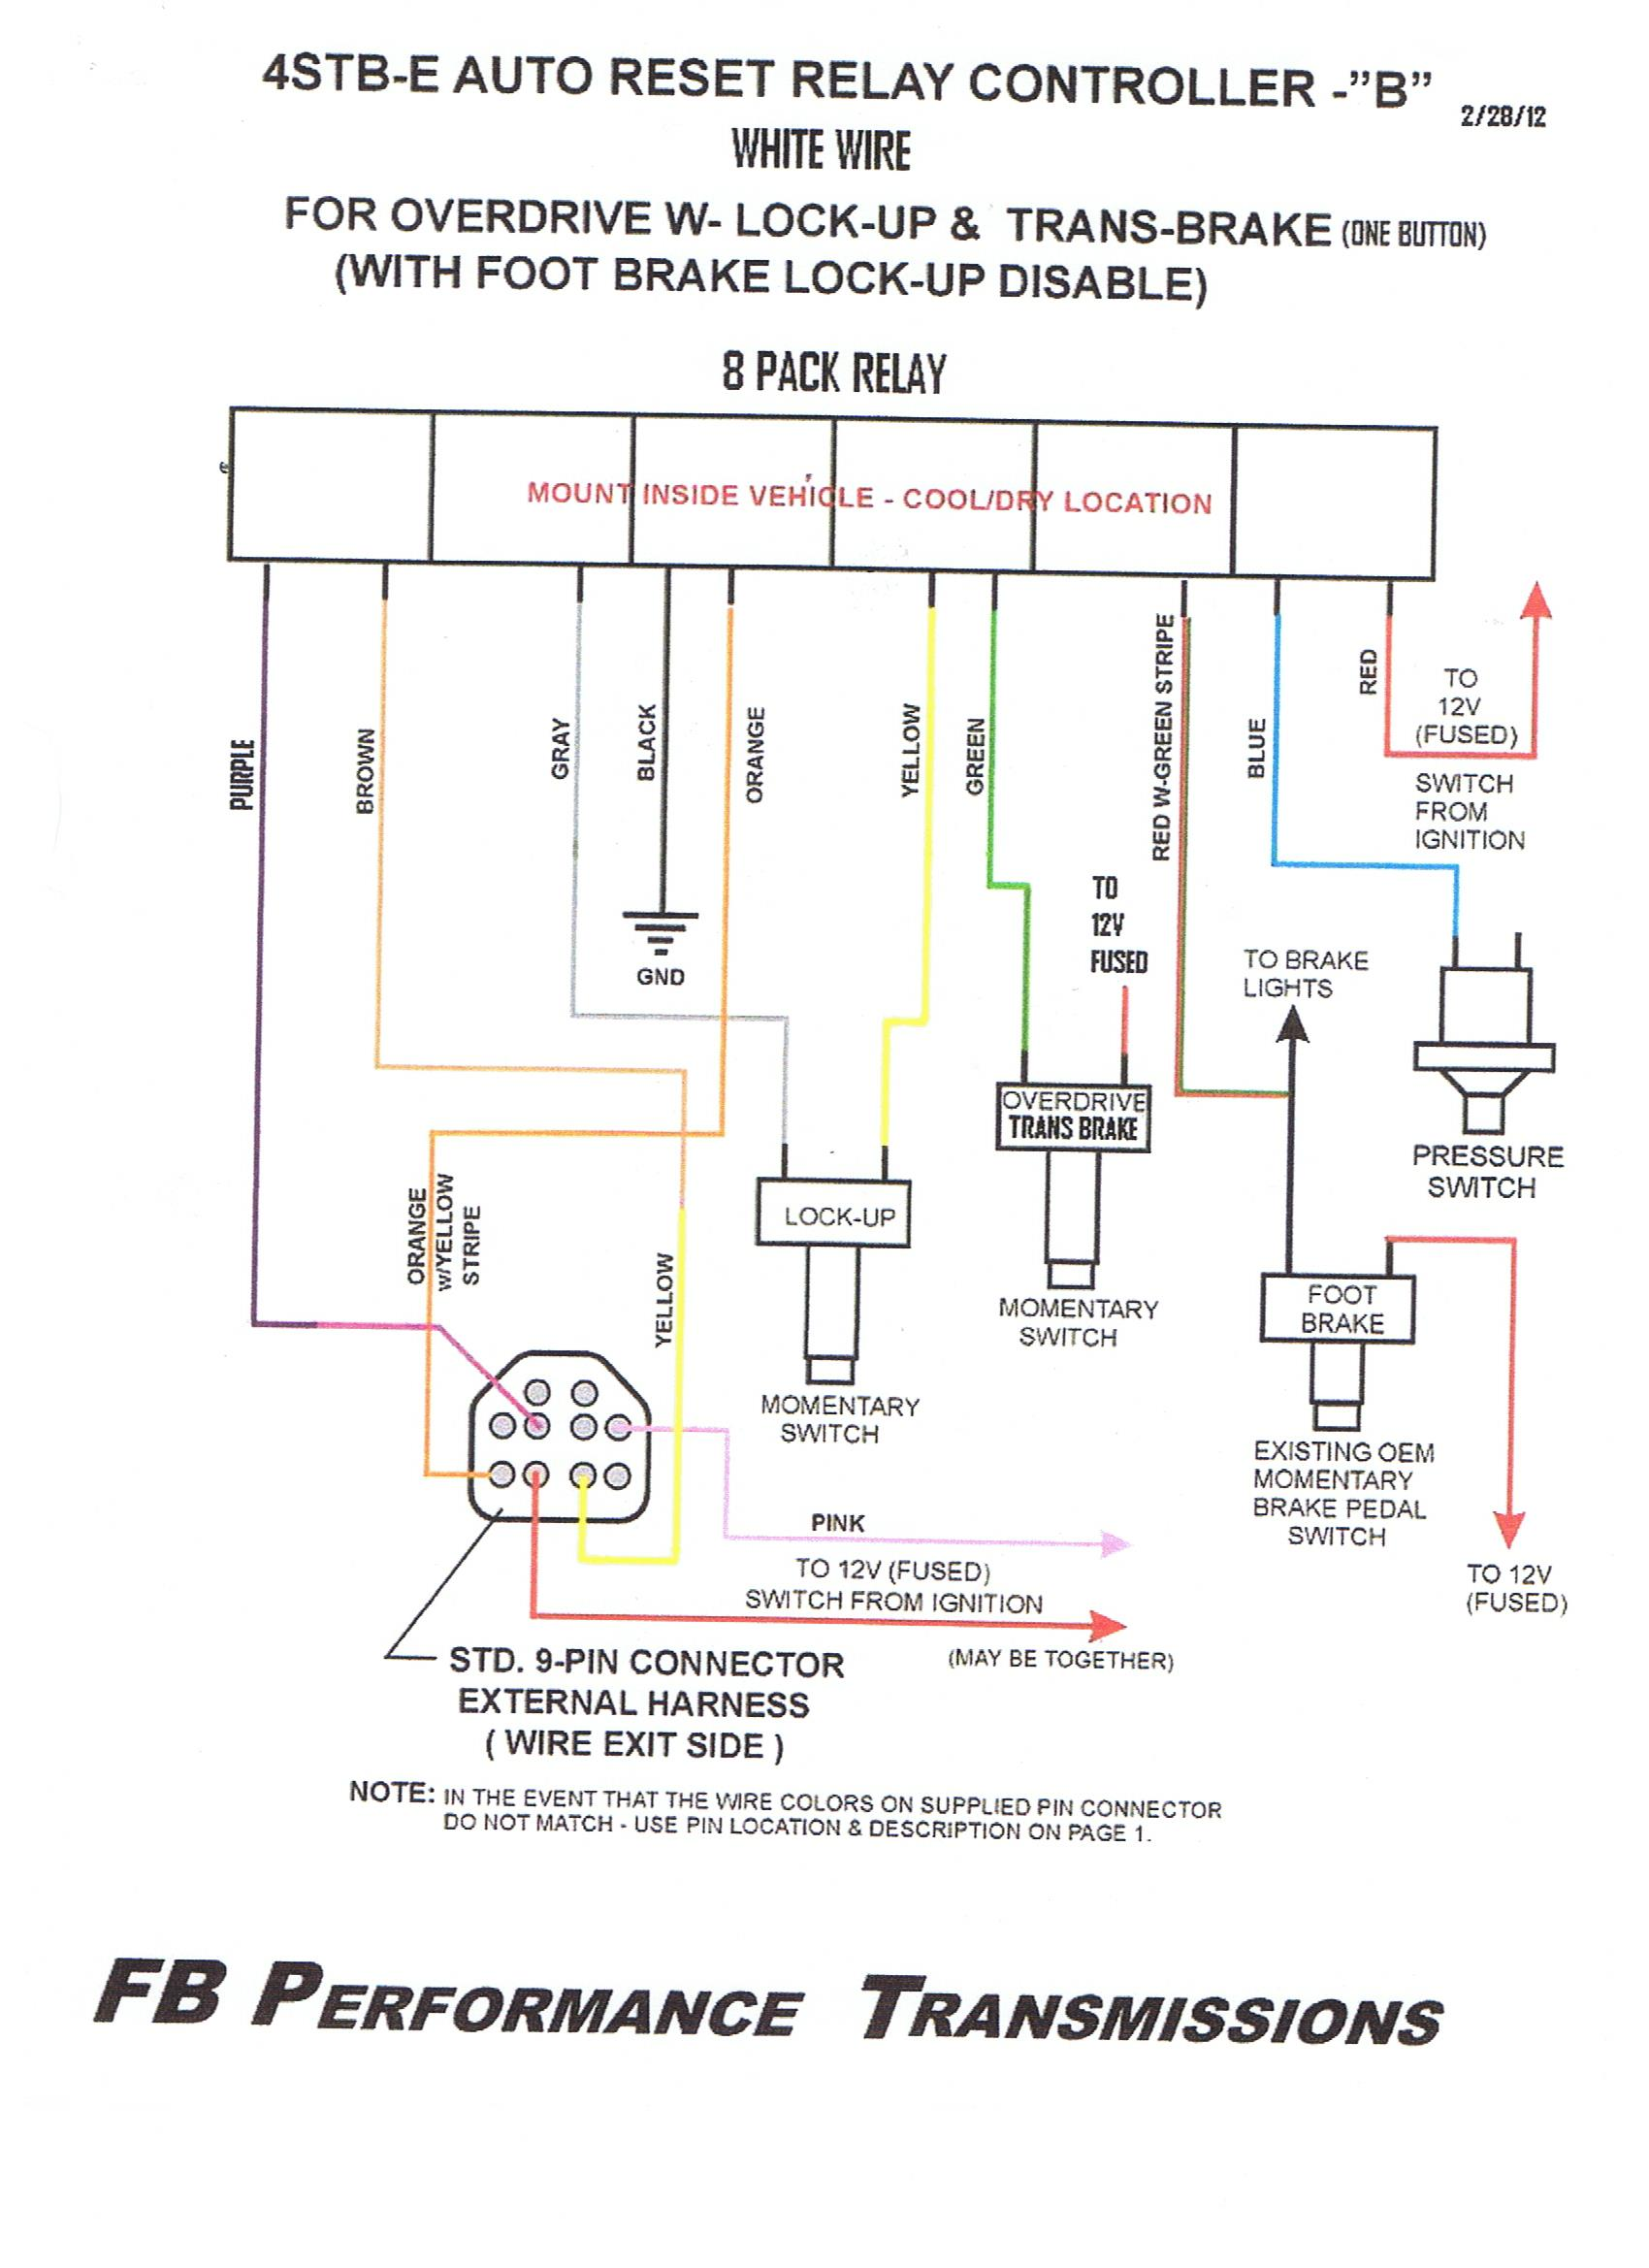 Aod Wiring Diagram Daily Update Model Kenwood Kdcdishwasher Aode Transmission 32